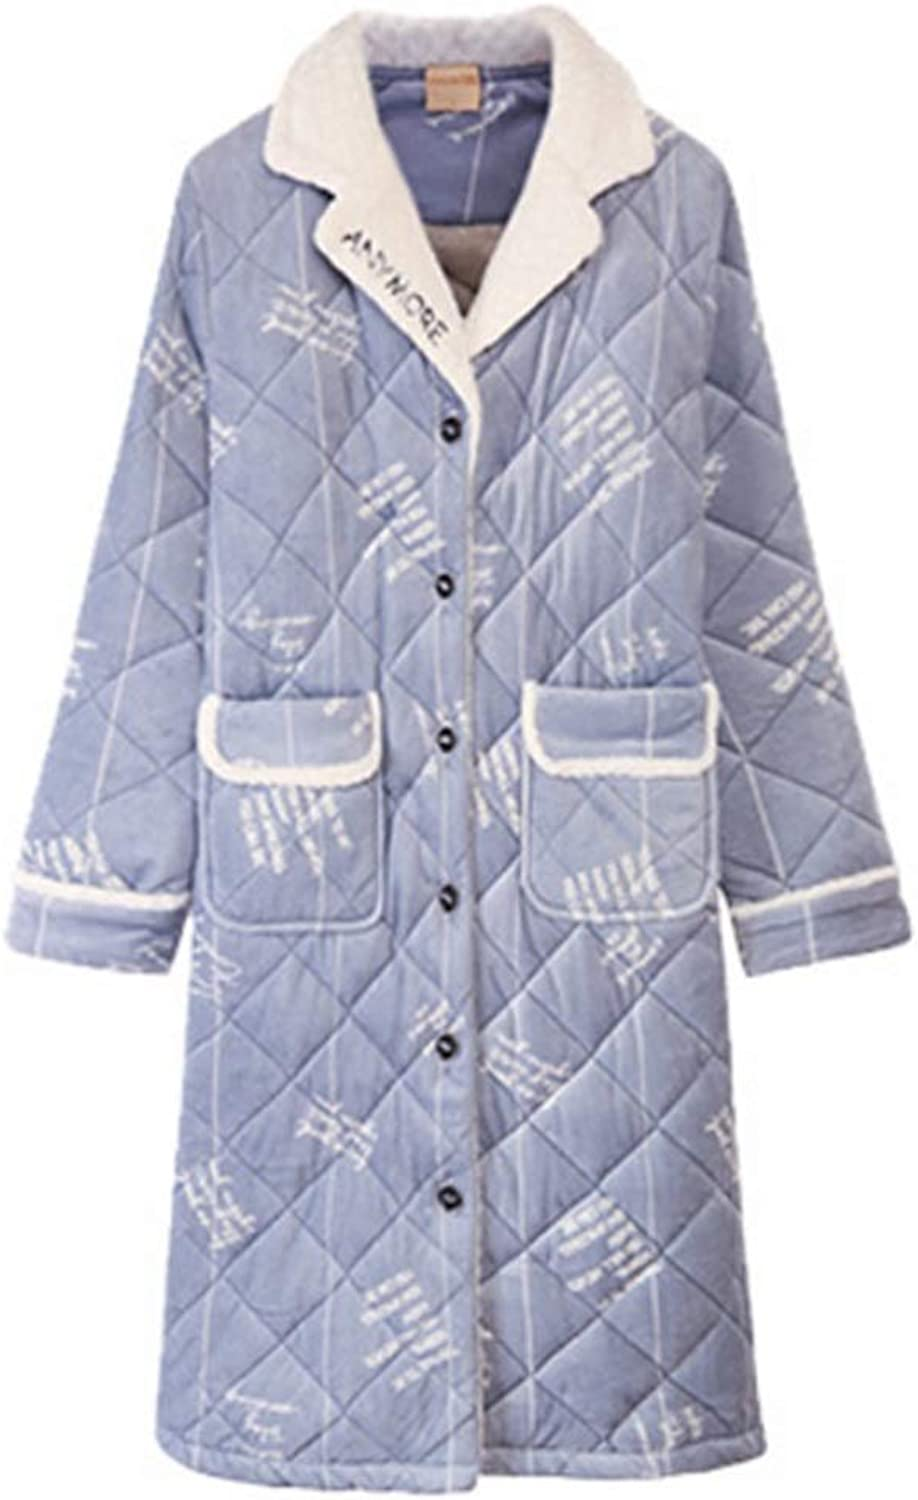 NAN Liang ThreeLayer Quilted Pajamas, Ladies' Autumn and Winter Cardigans, Thick Warm Bathrobes, Home Service Gowns Soft (Size   165(L))